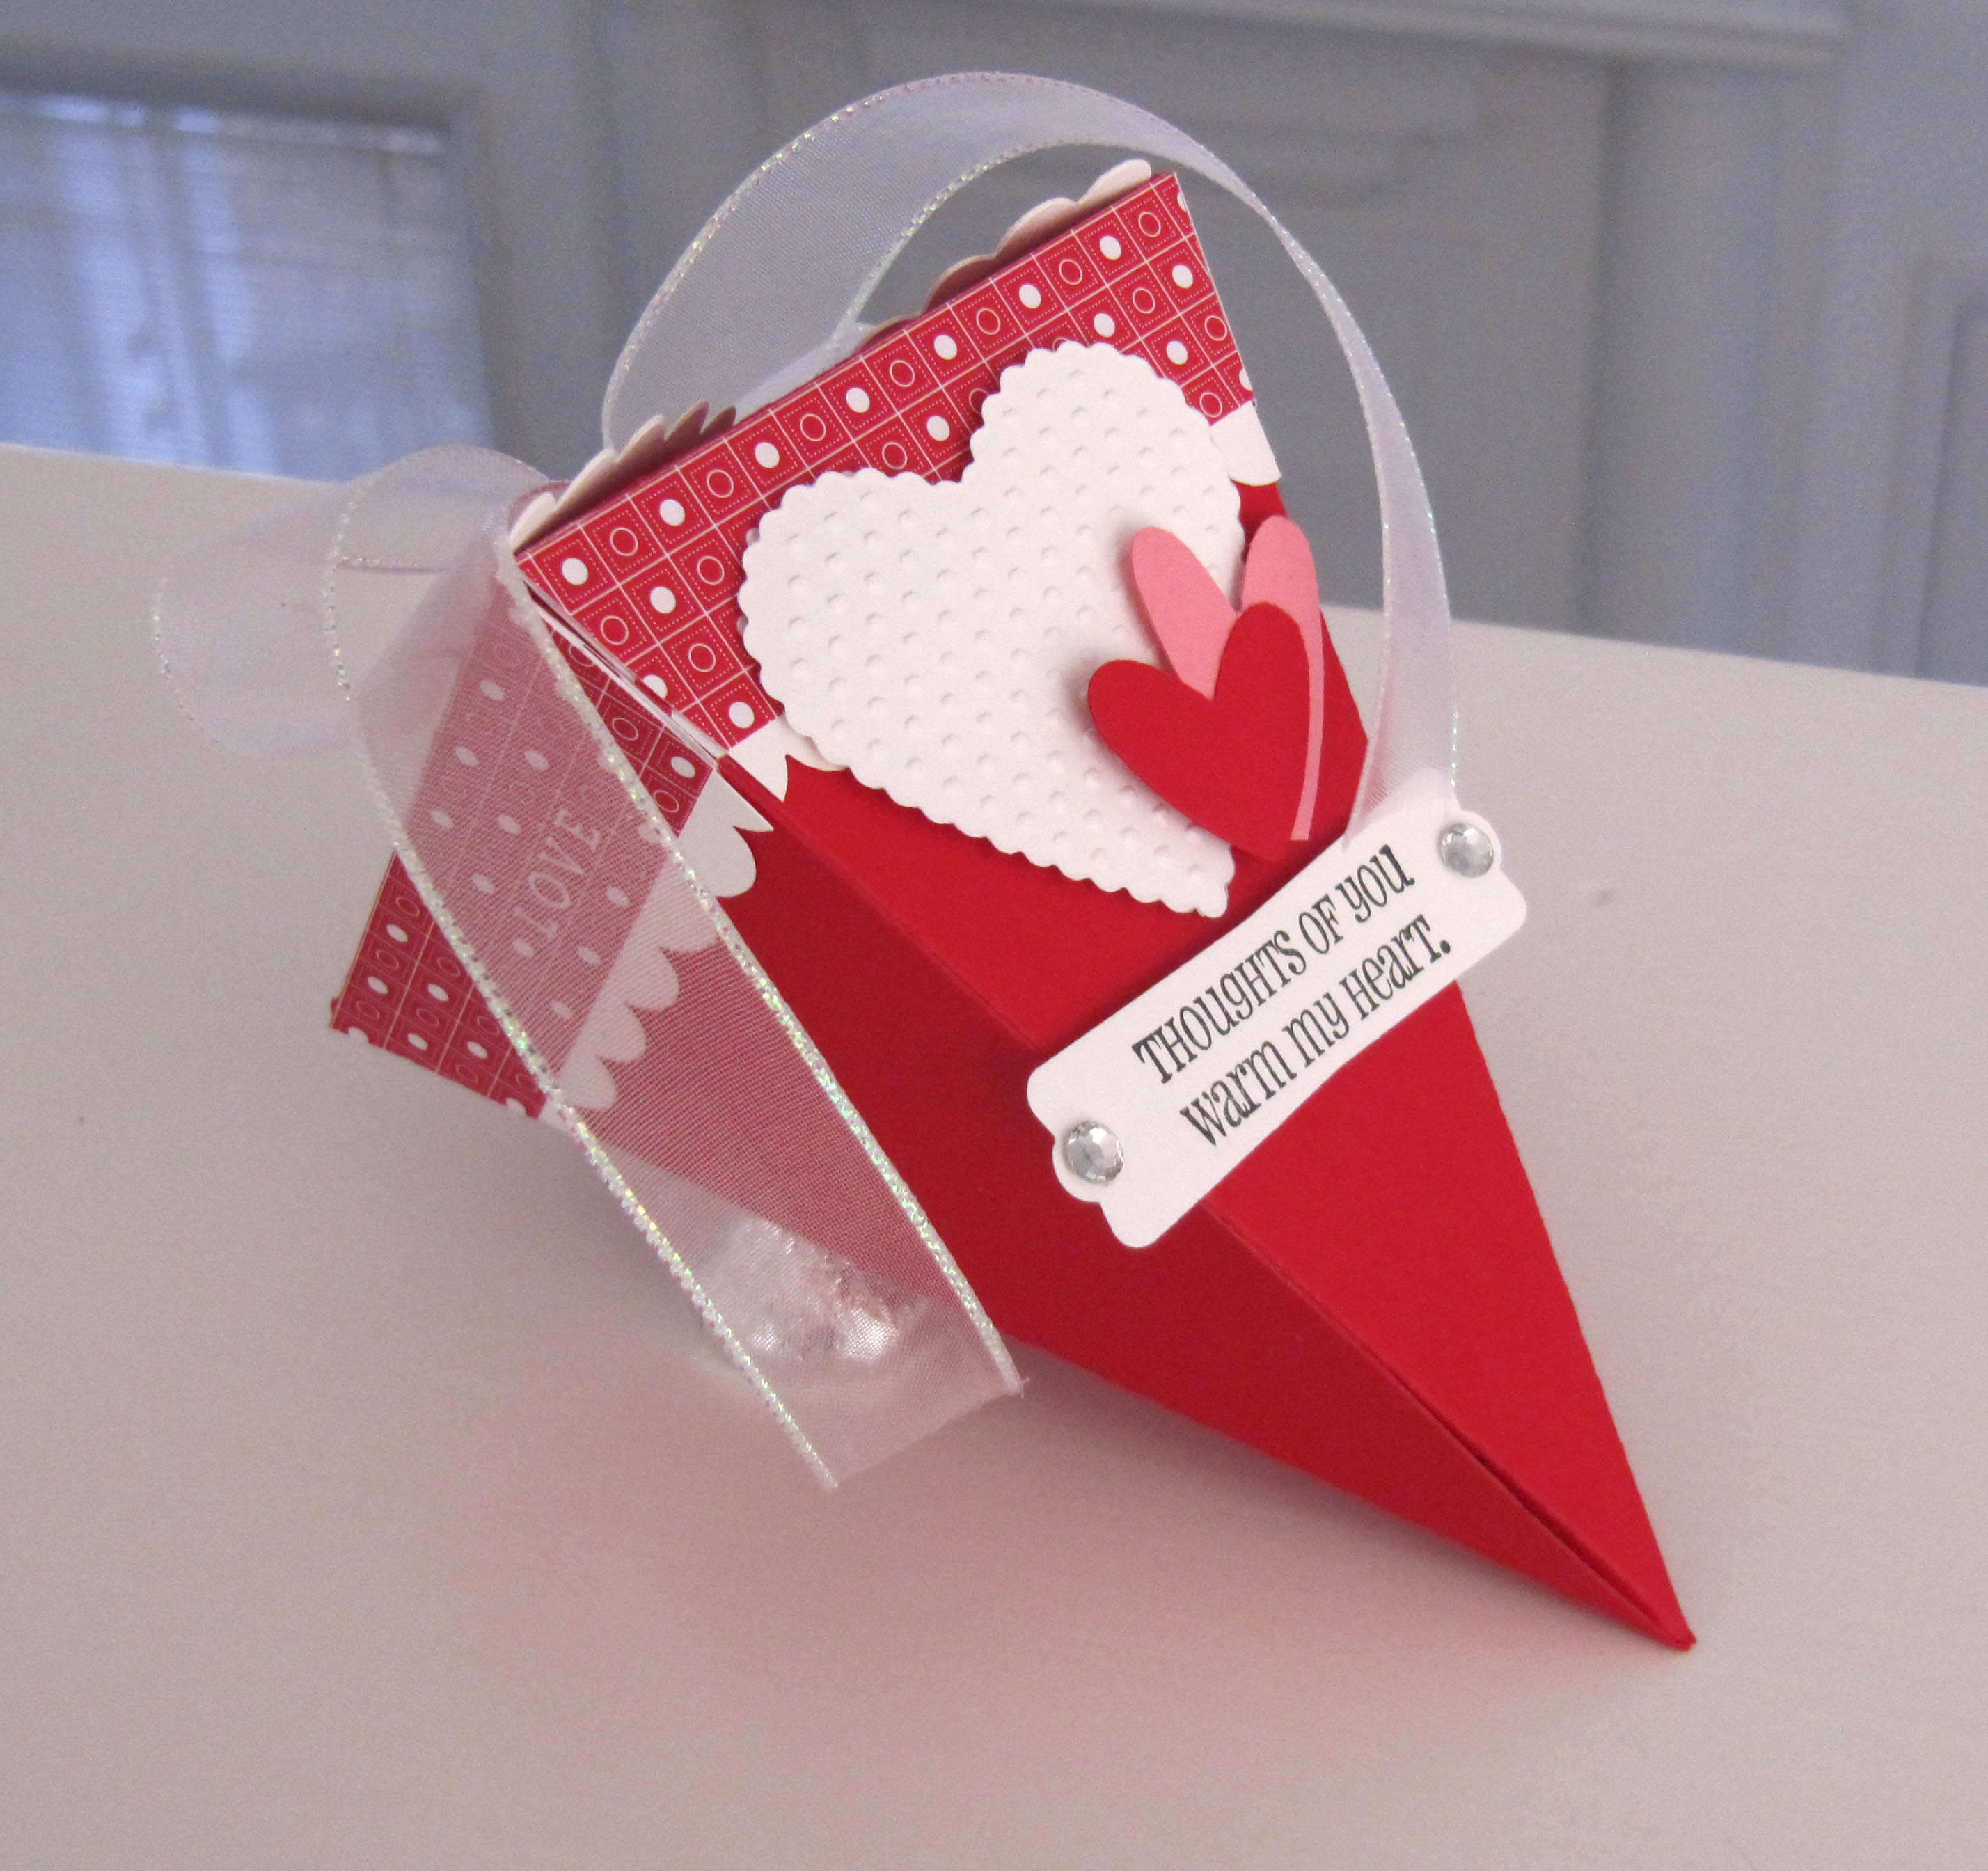 brandy cox makes a favor with the stampin up petal cone bigz l die